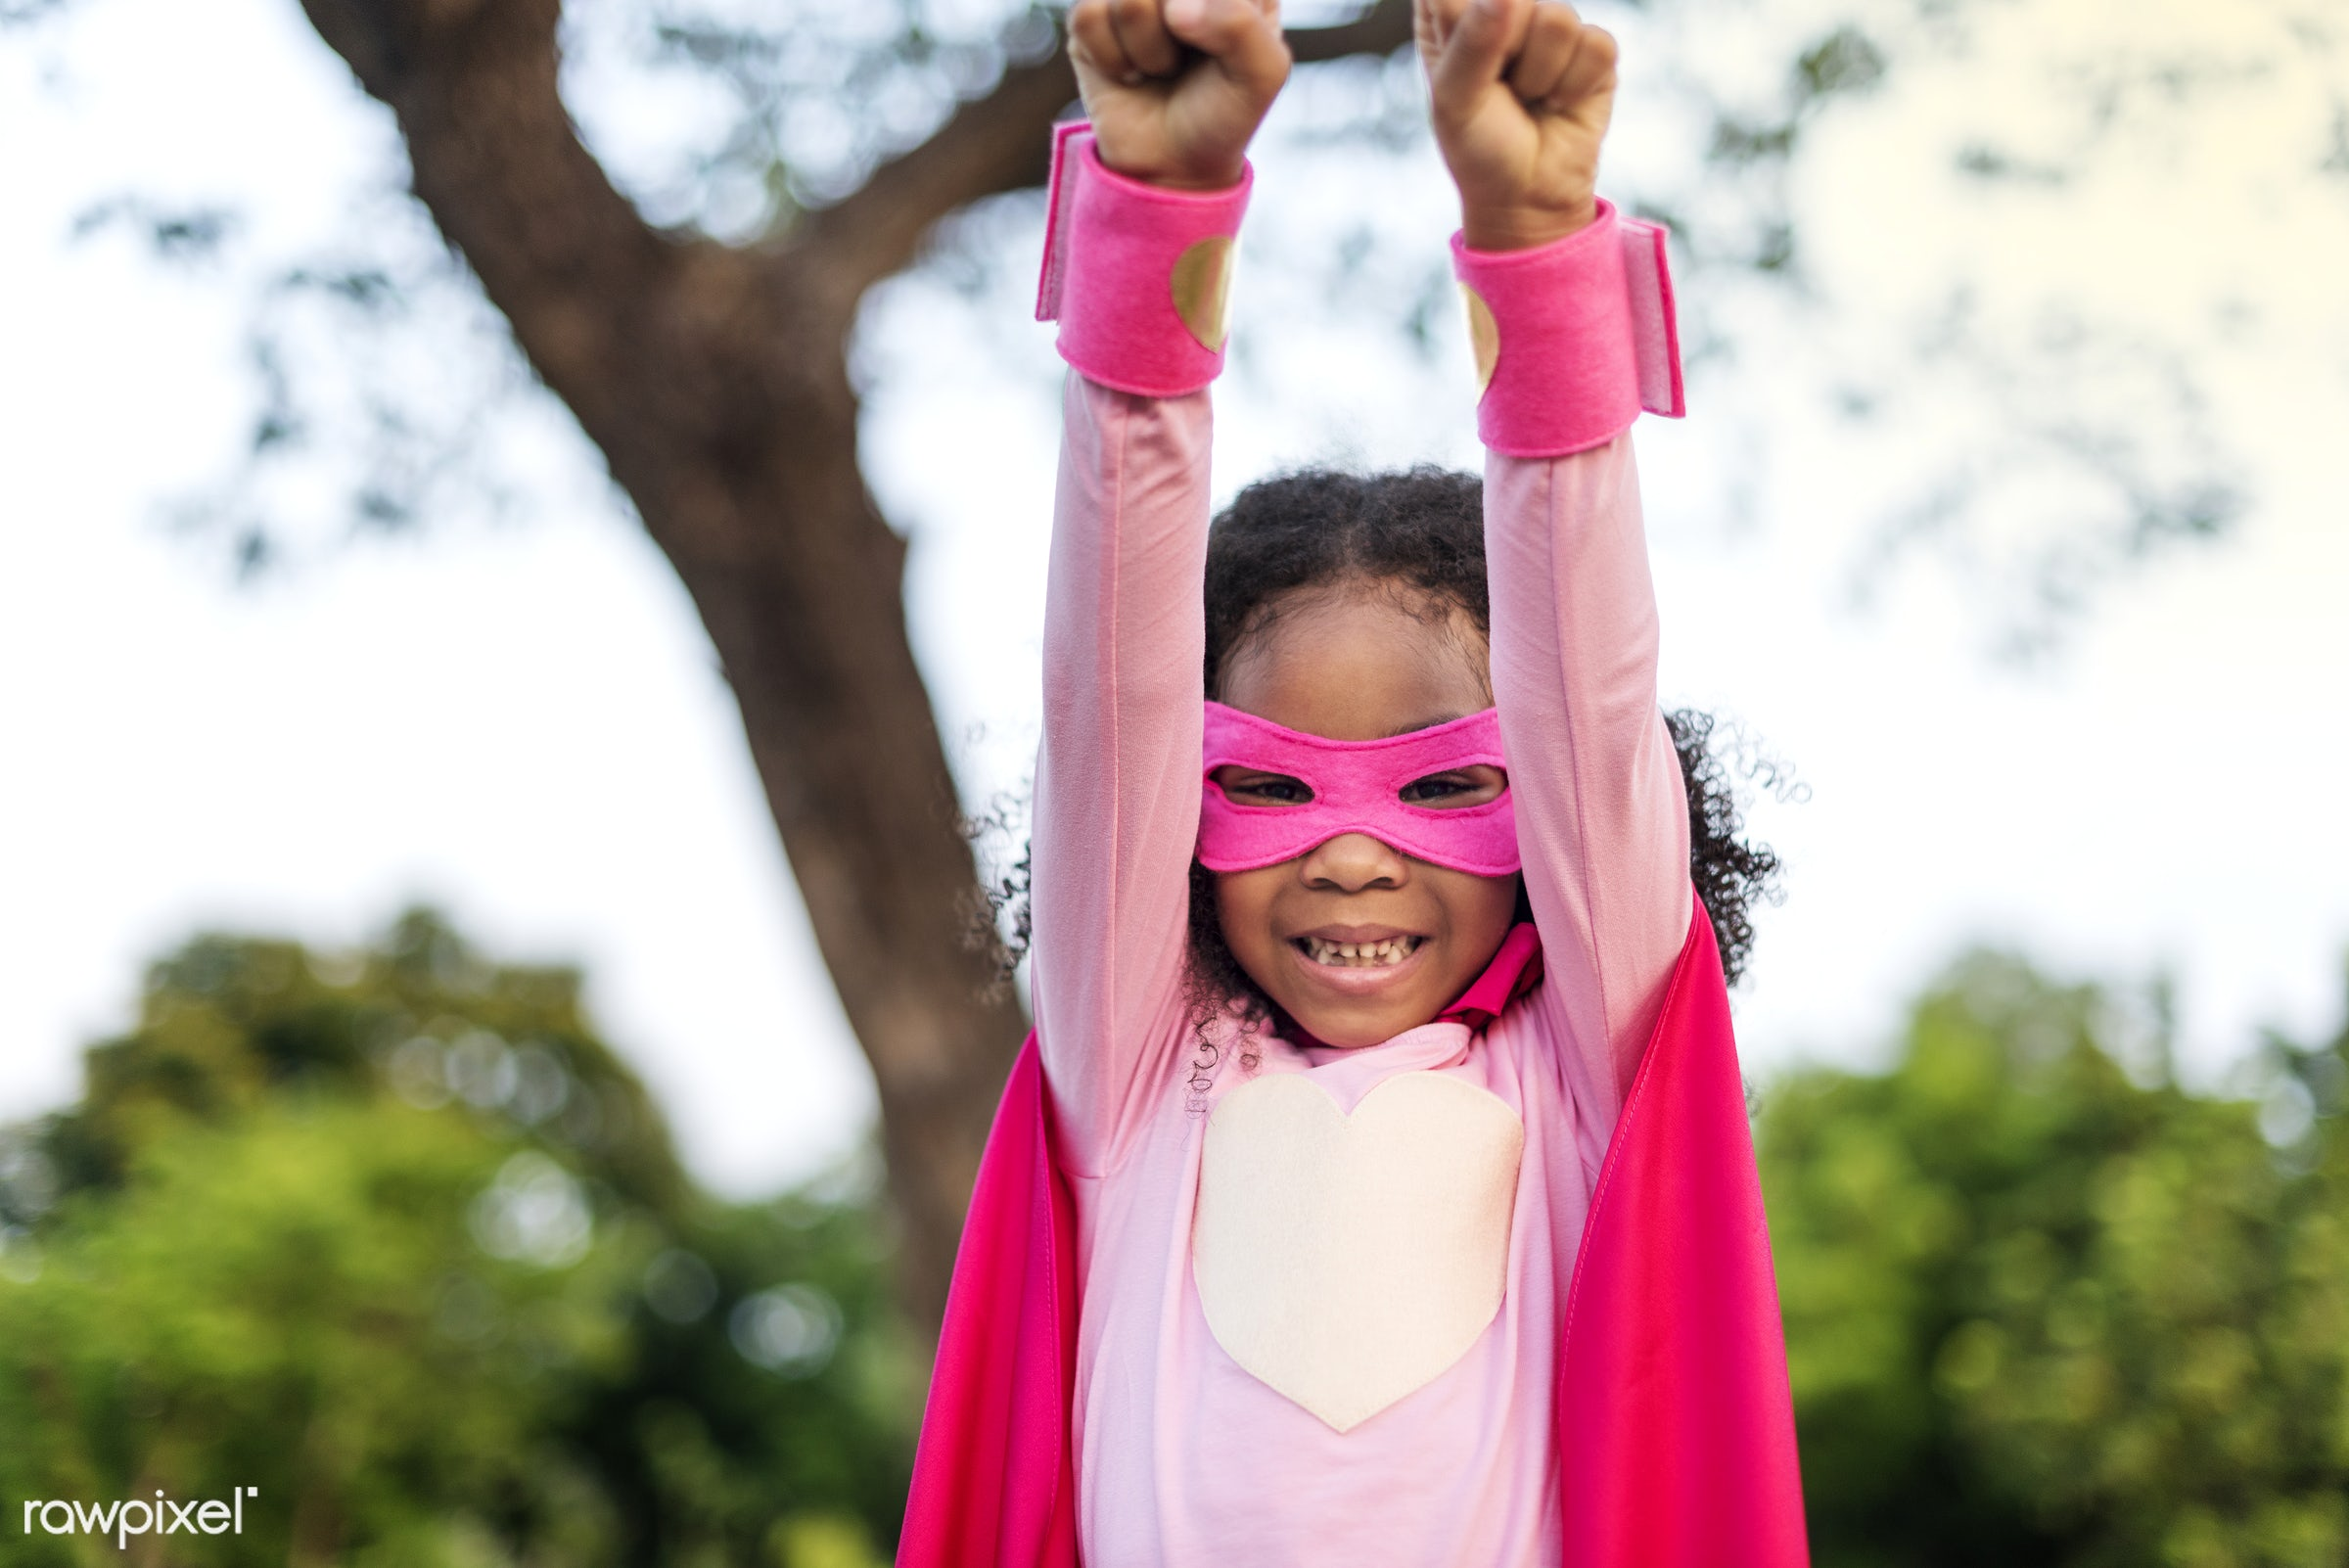 Pink superhero girl - superhero, activity, african descent, aspirations, brave, cheerful, child, childhood, colorful,...